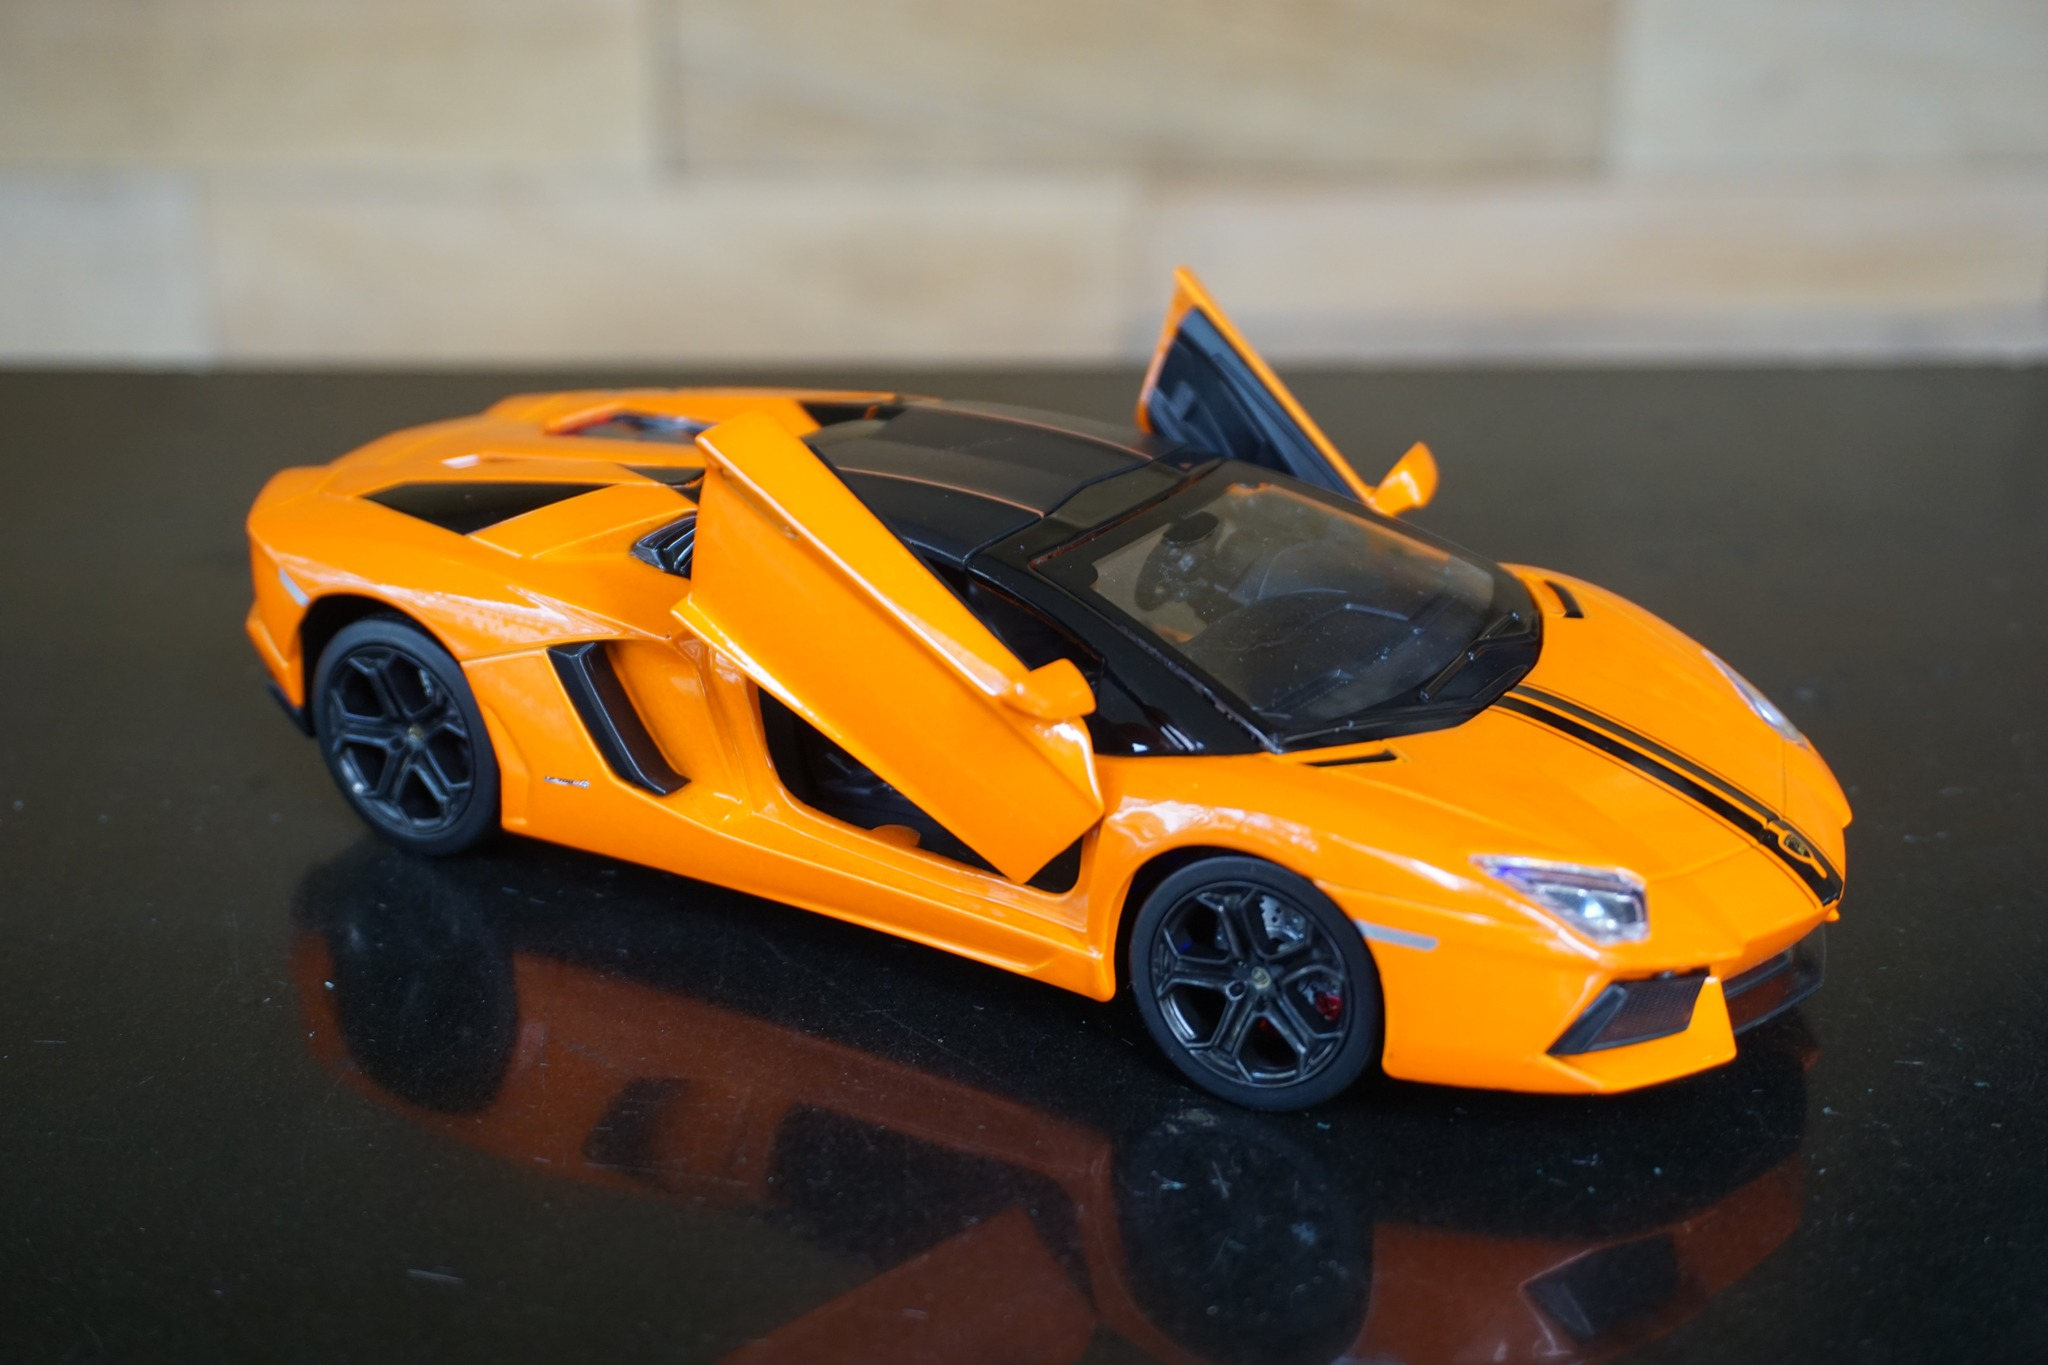 Toys For Cars : Toys for the big boys petron supercars toy car